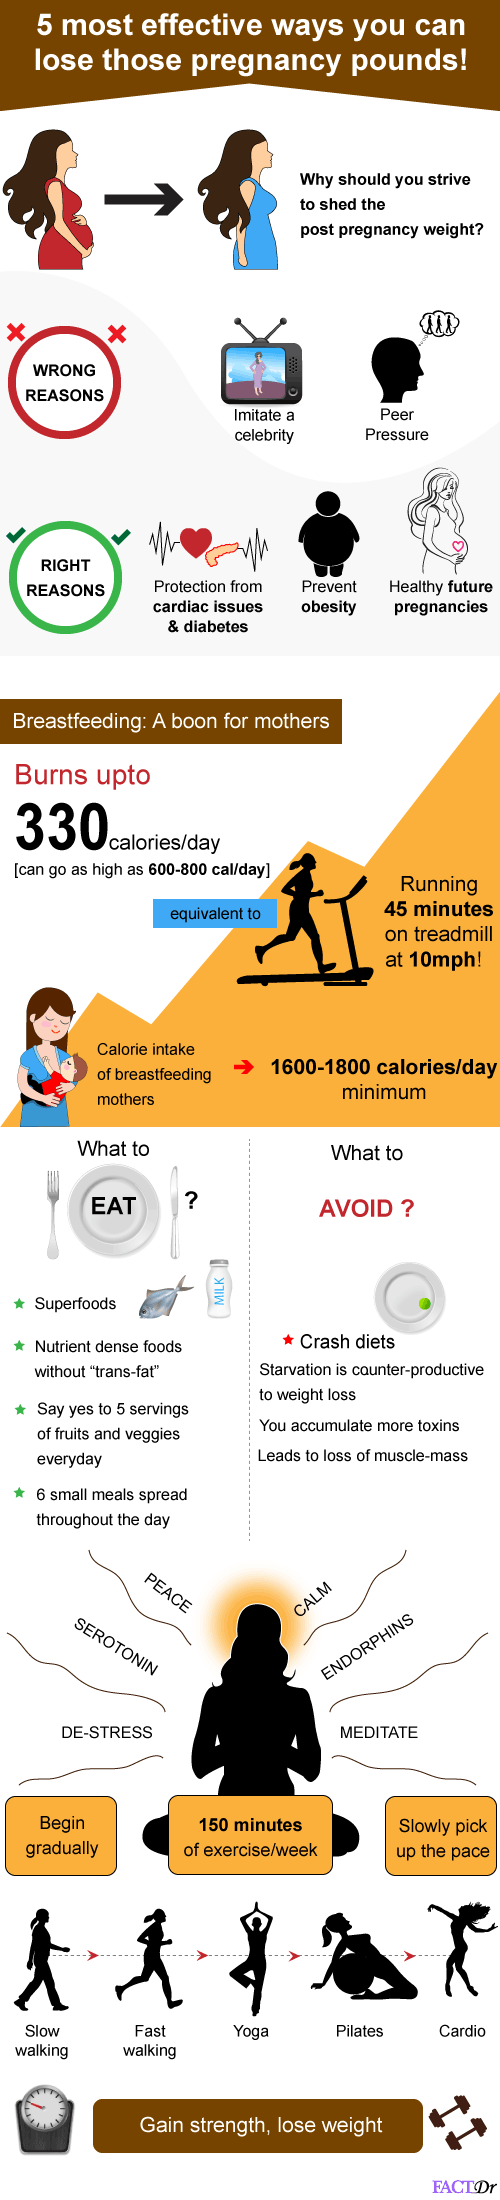 lose pregnancy weight infographic